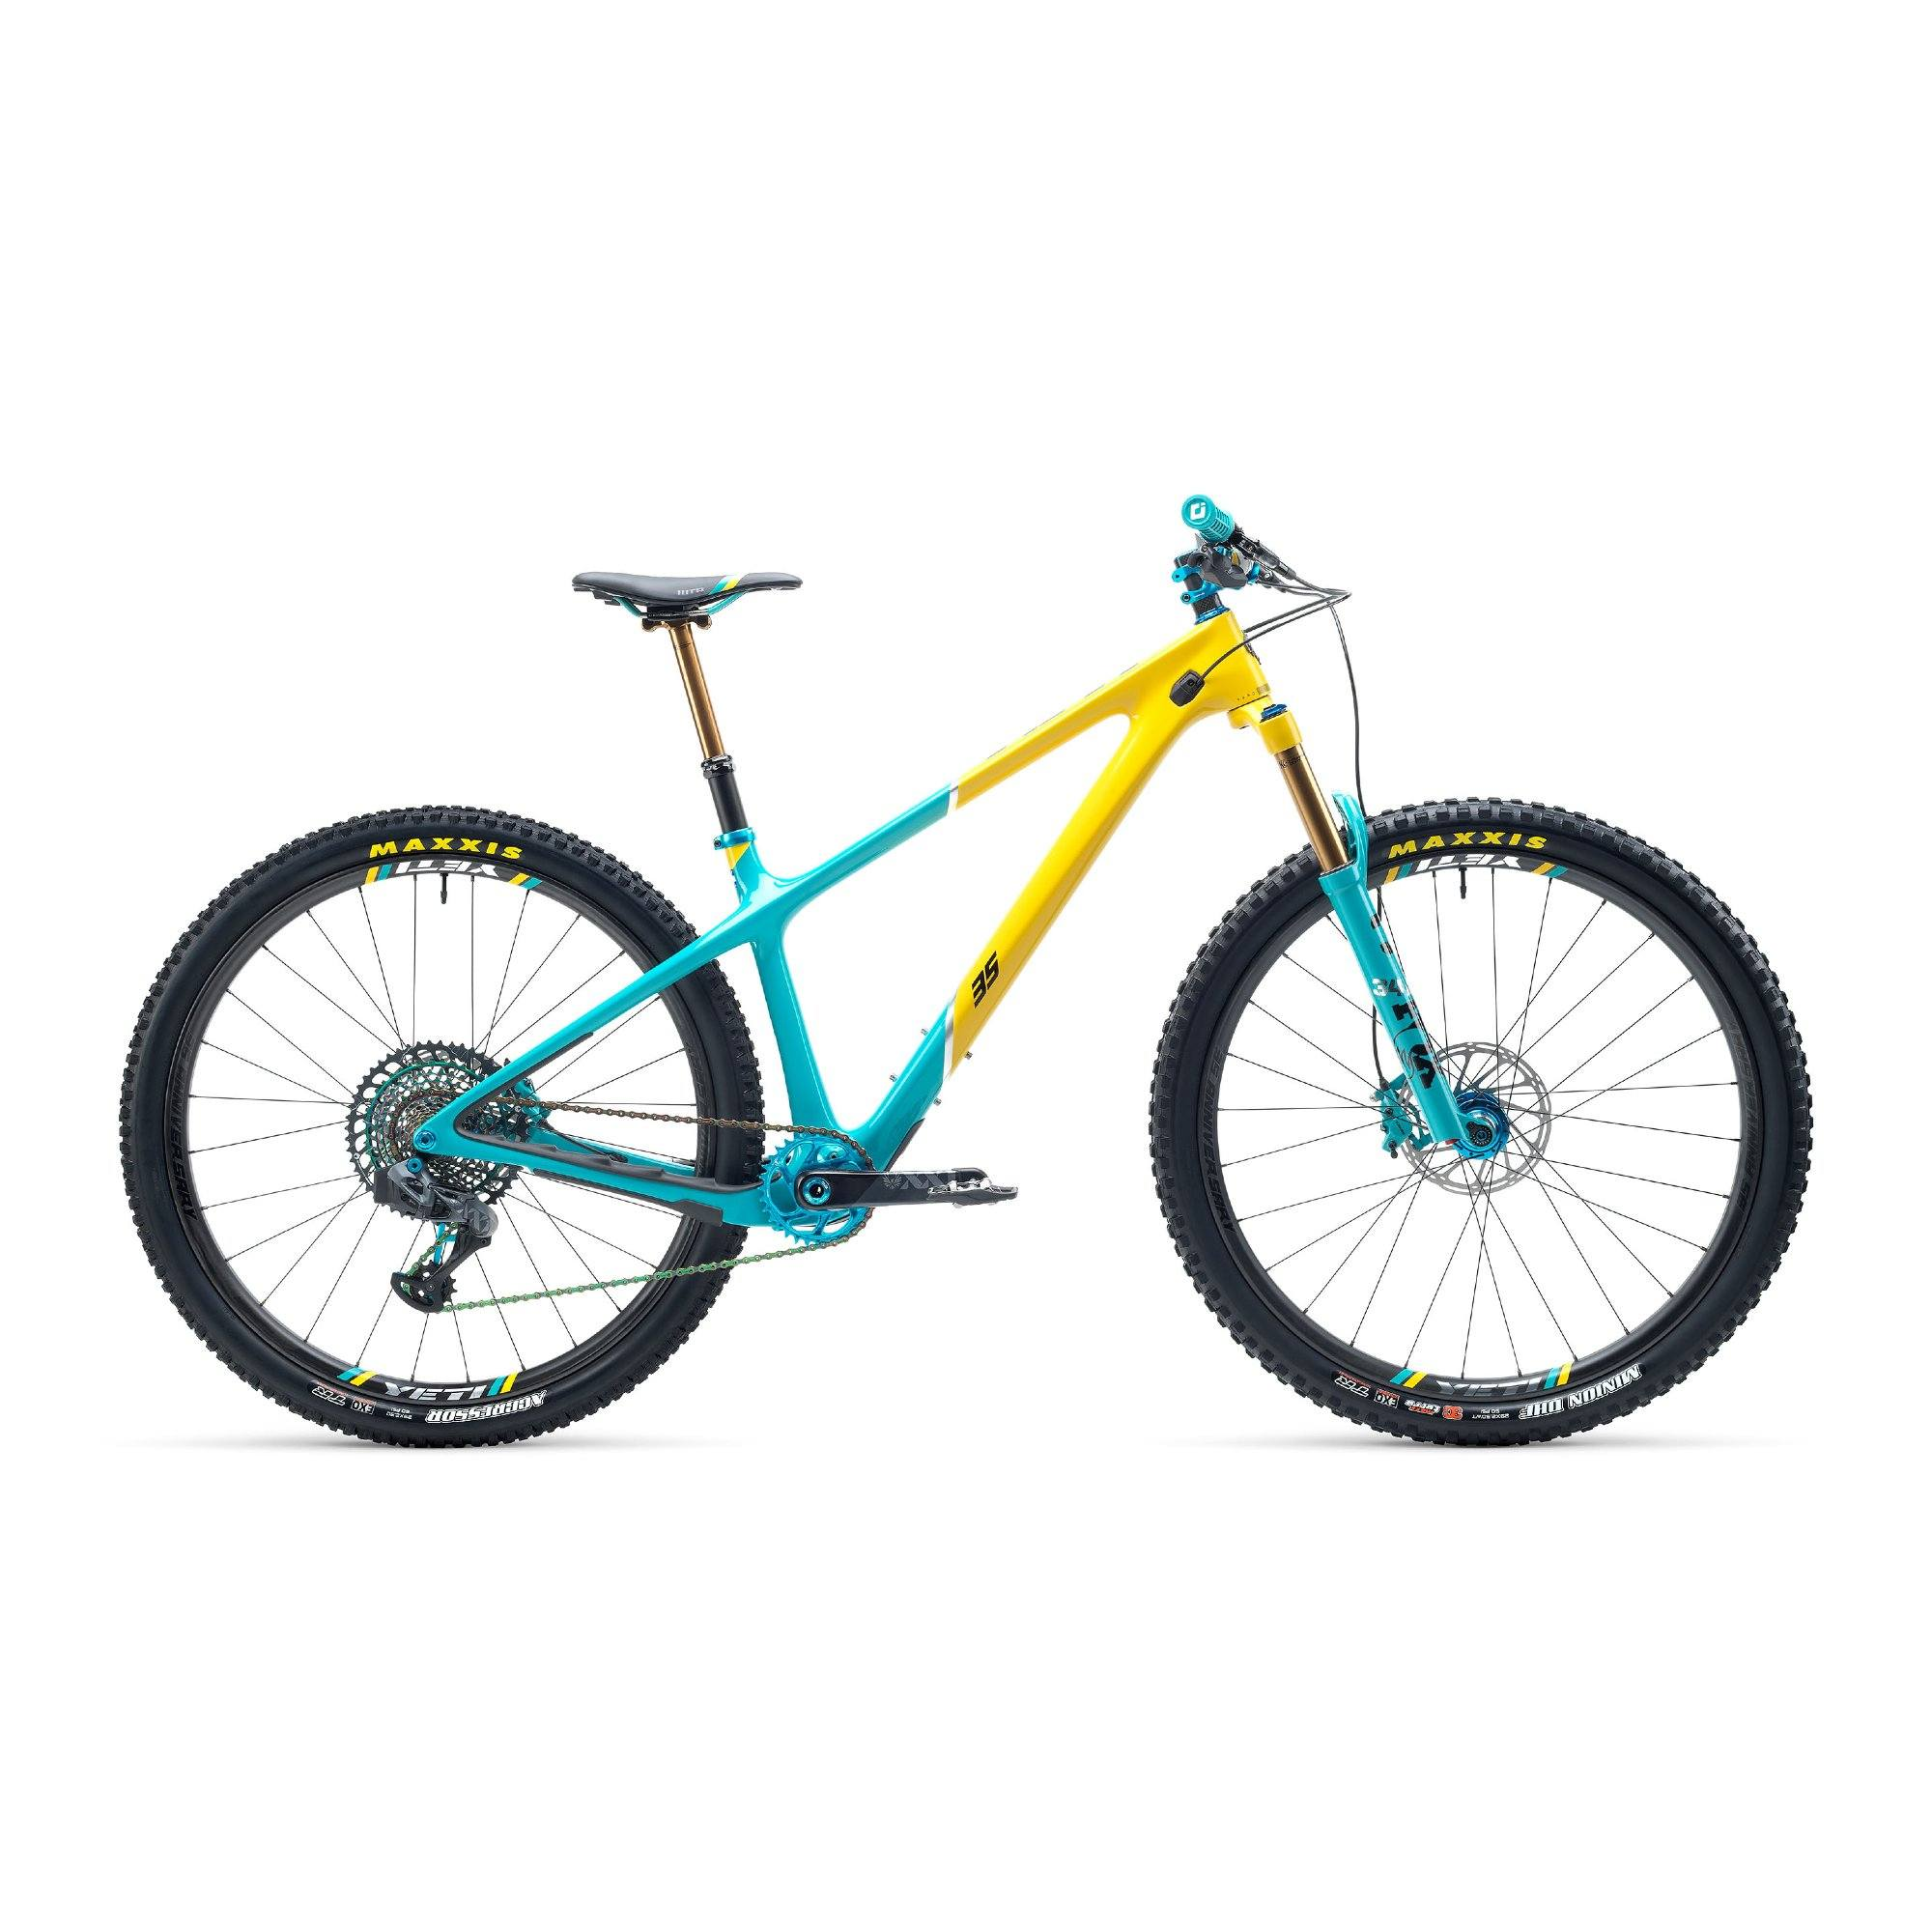 Yeti ARC Anniversary Edition 29er XX1 Eagle AXS Mountain Bike Turq/Yel